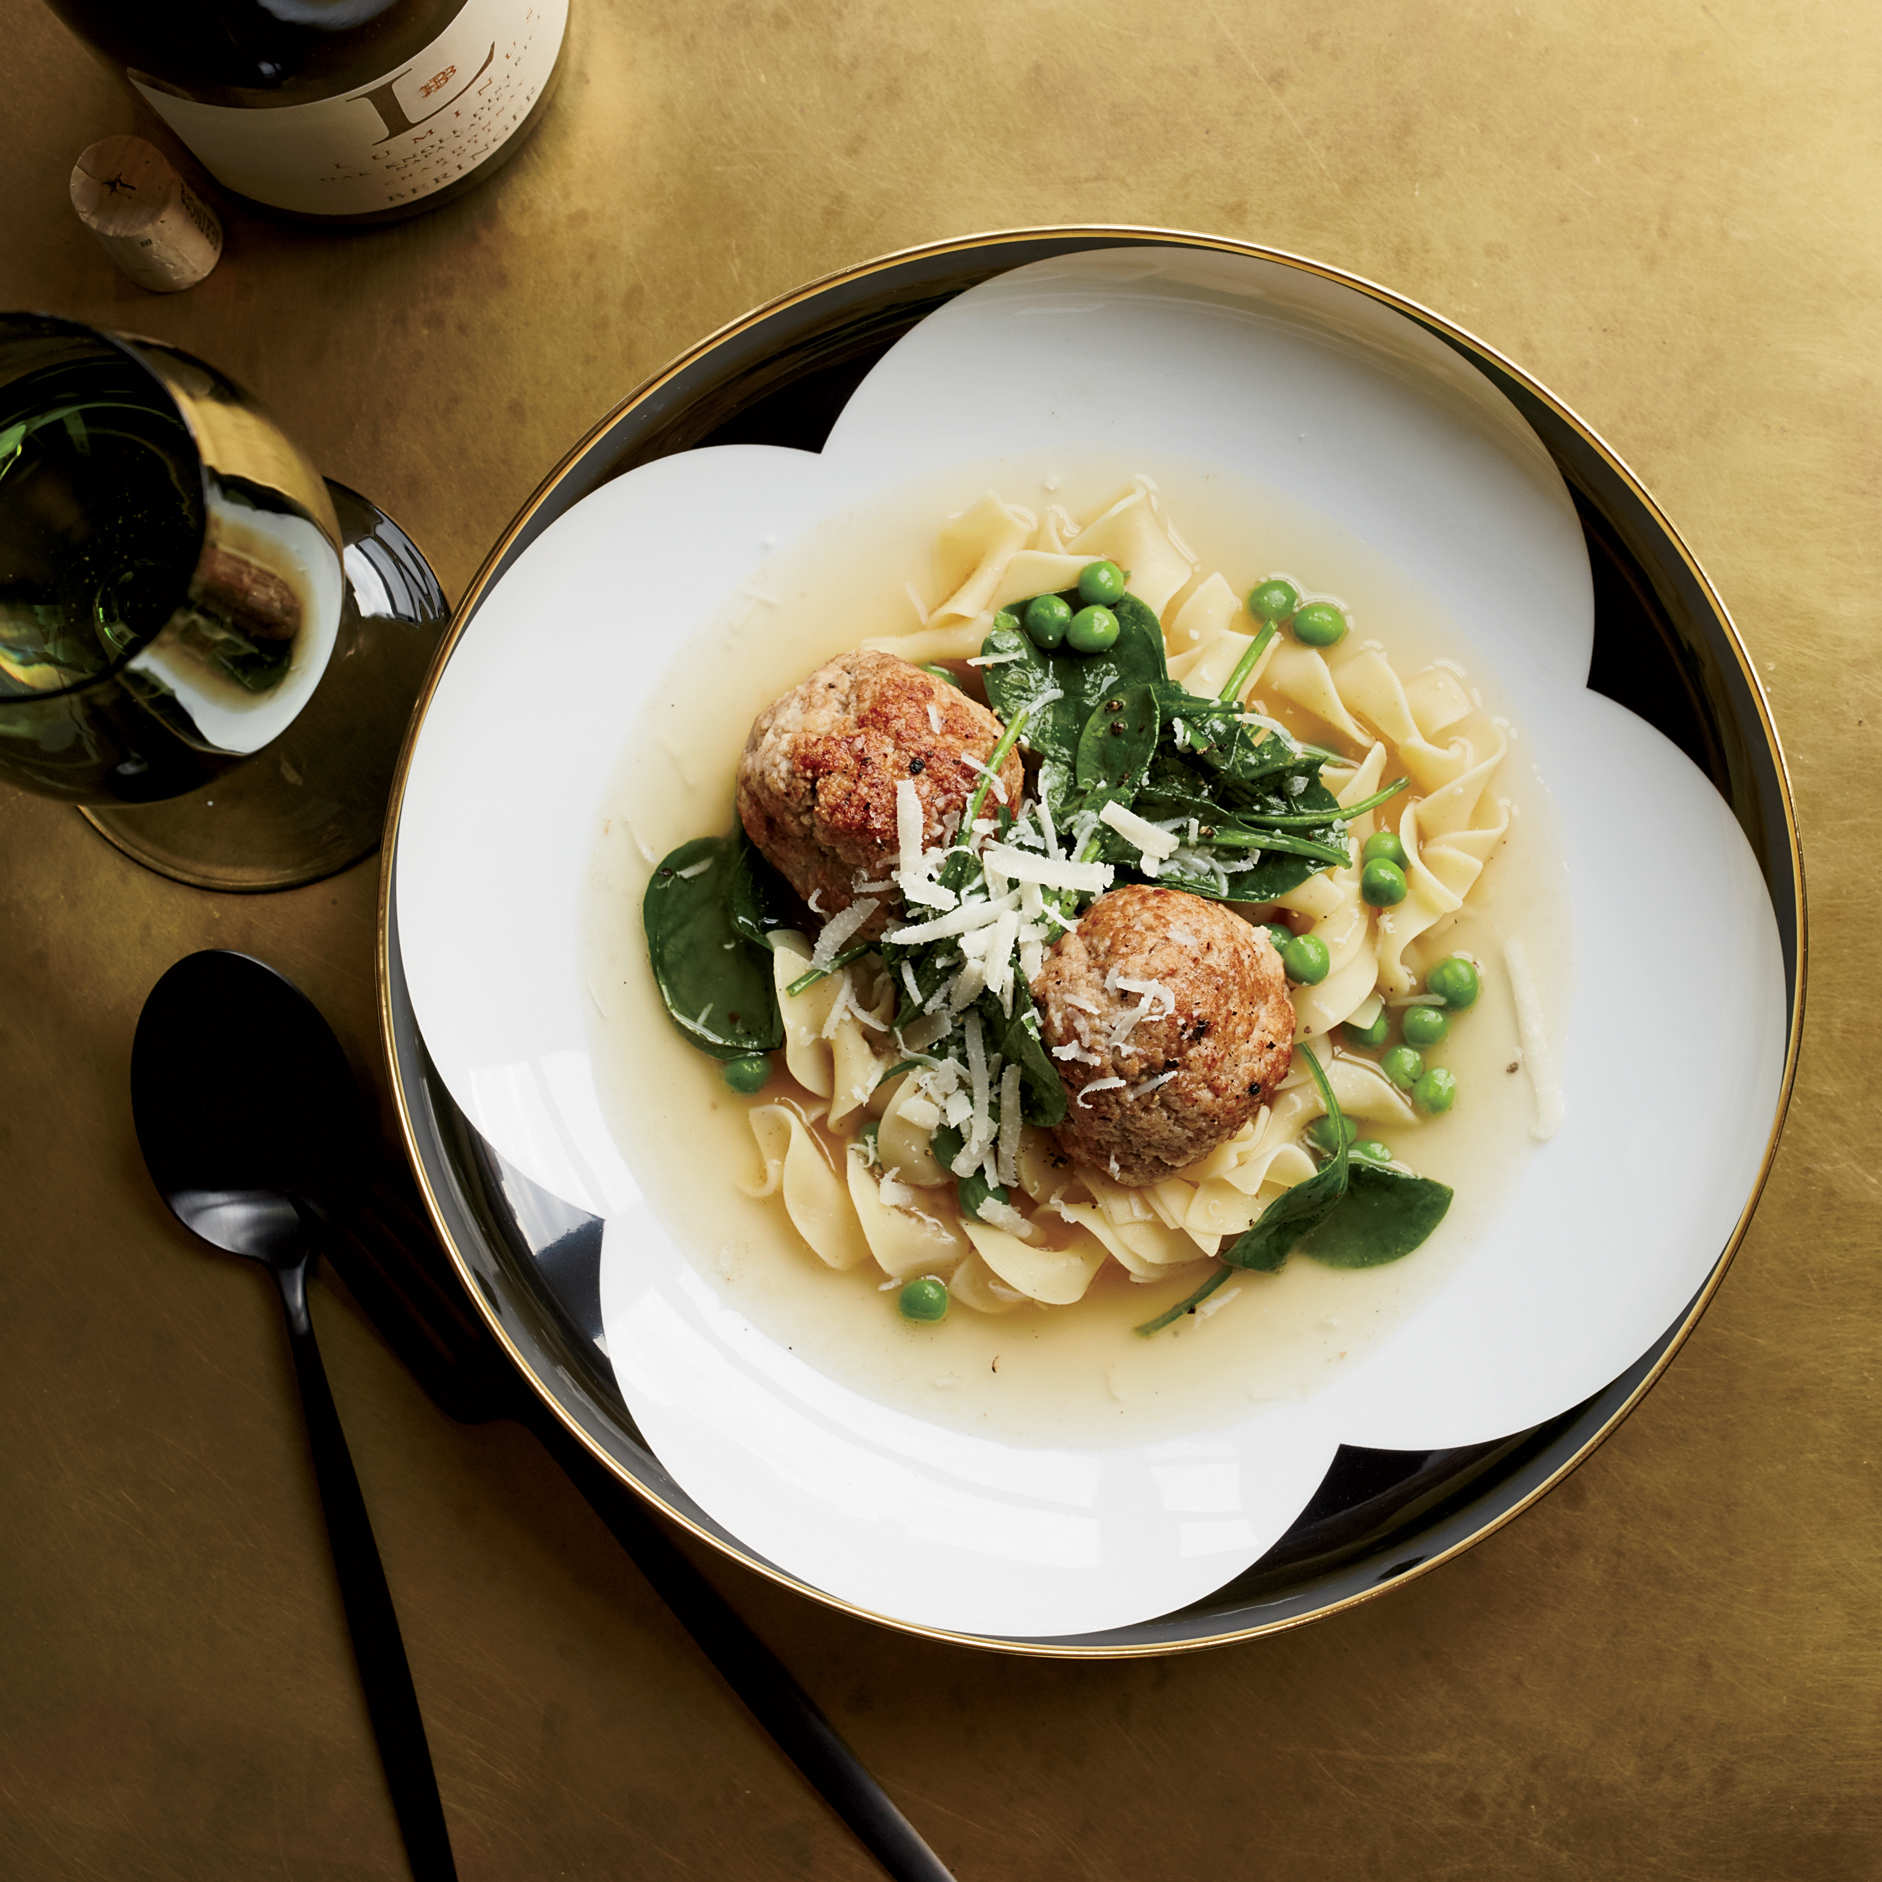 Pork-and-Ricotta Meatballs in Parmesan Broth